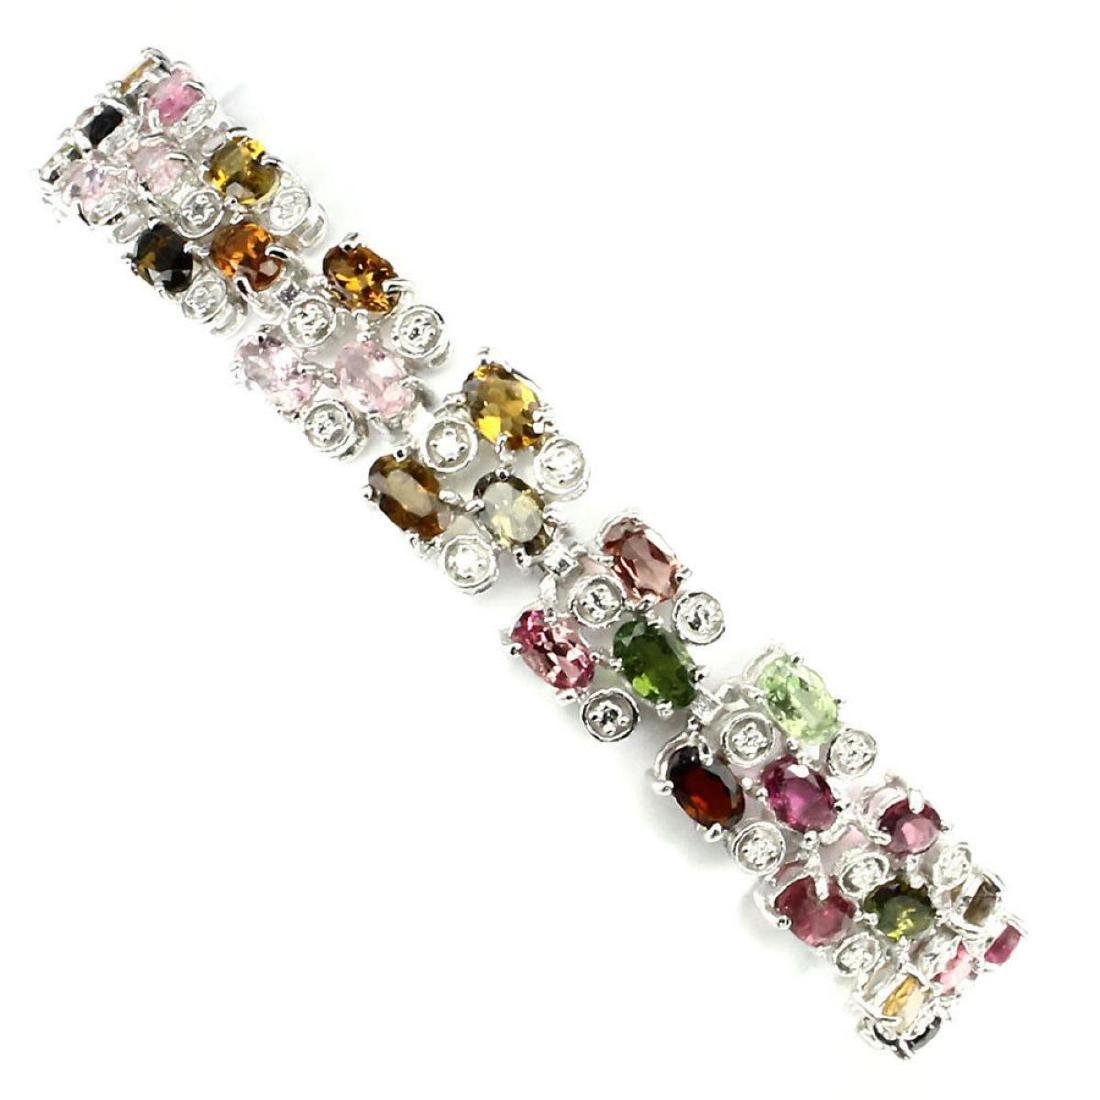 Natural Fancy Tourmaline 76 Ct Bracelet